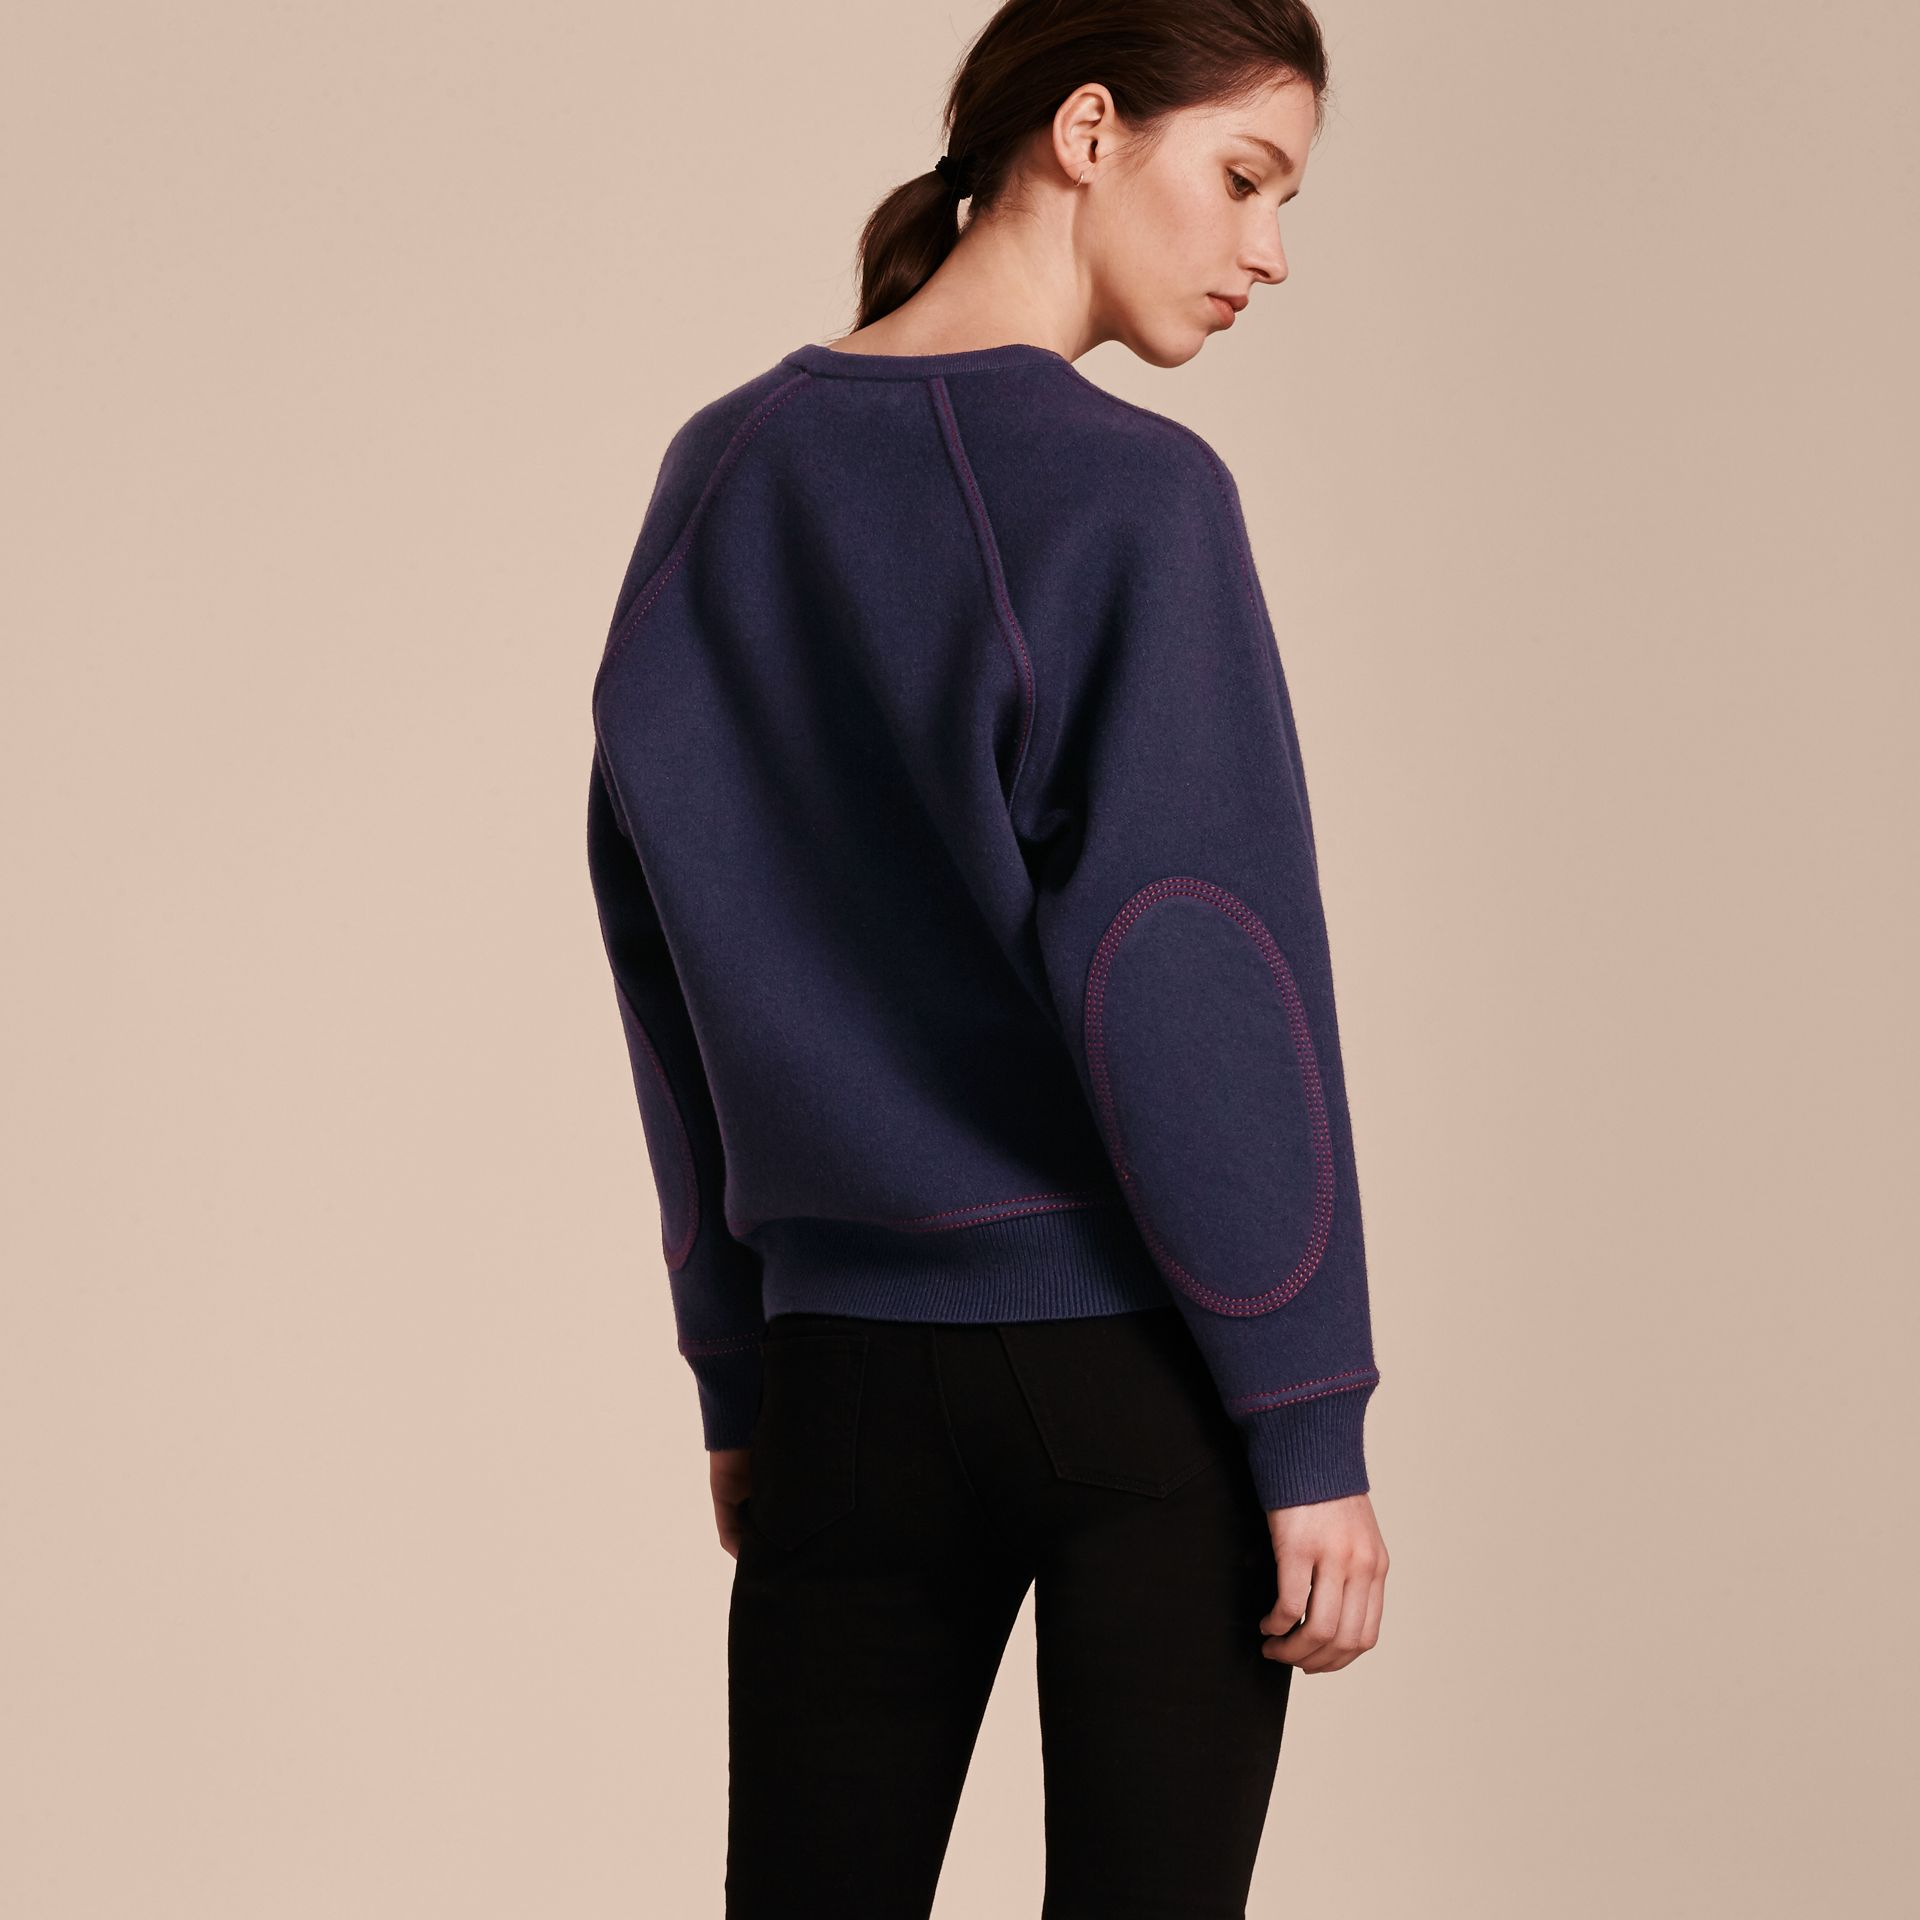 Topstitch Detail Wool Cashmere Blend Sweater in Navy - Women | Burberry Hong Kong - gallery image 3